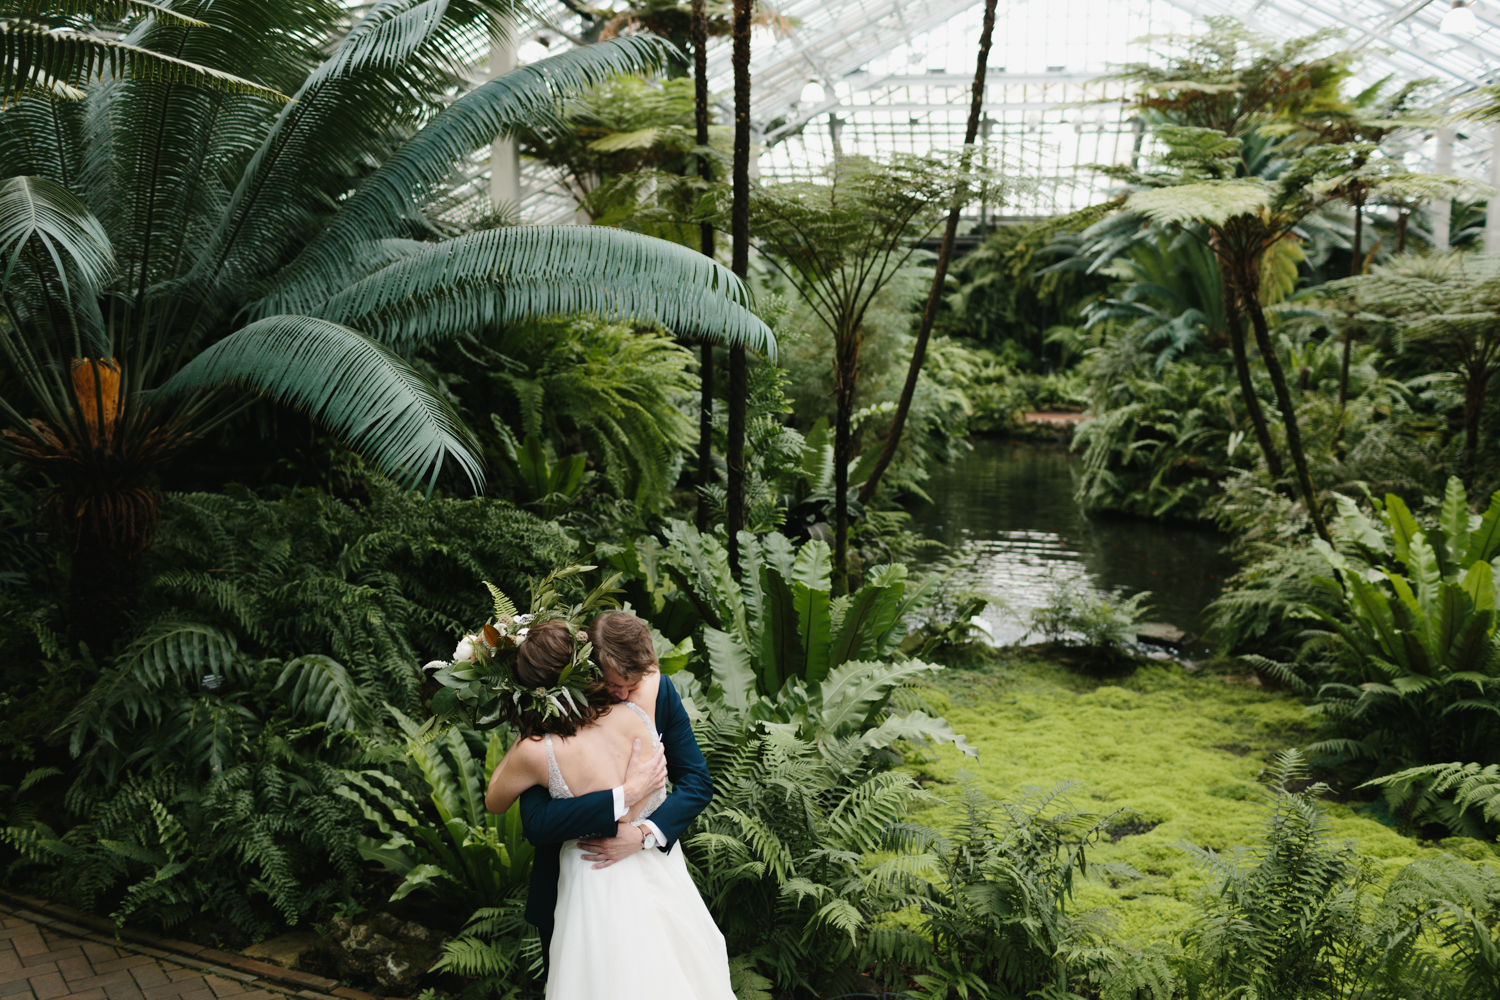 Chicago Garfield Park Conservatory Wedding by Northern Michigan Photographer Mae Stier-033.jpg